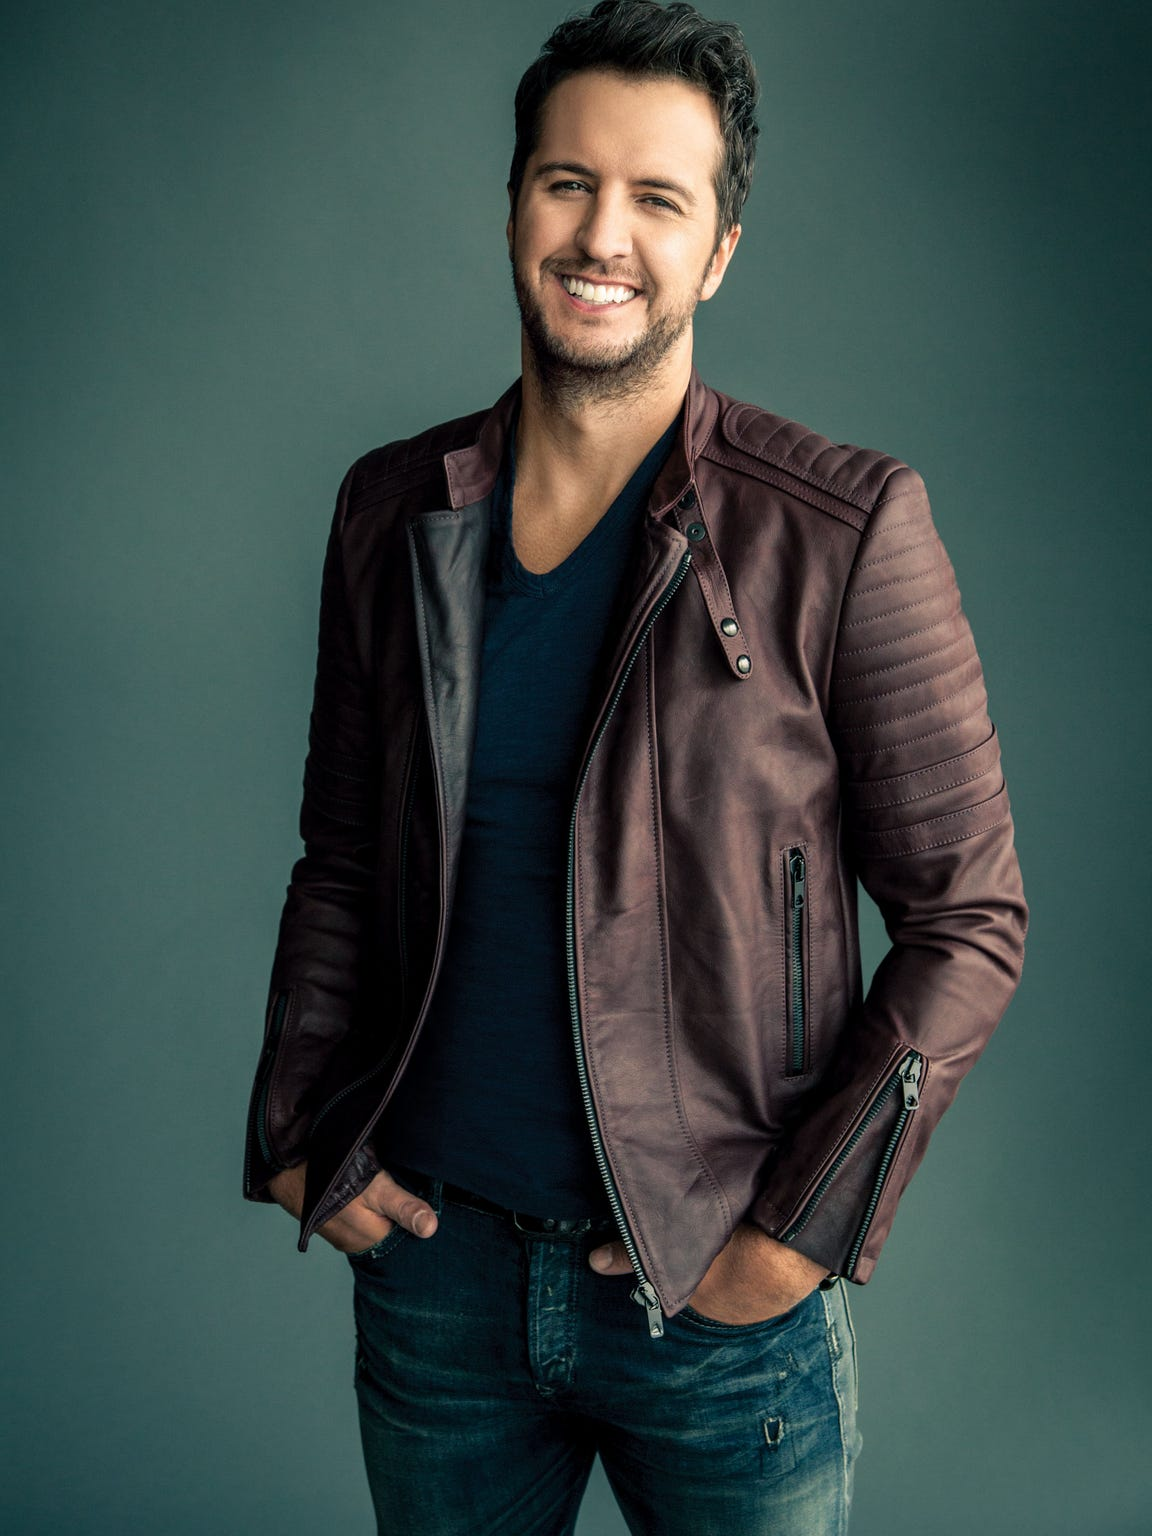 Luke Bryan brings his 2016 Kill the Lights Tour to Las Cruces. Tickets for the concert at the Pan Am sold out within the first two weeks.